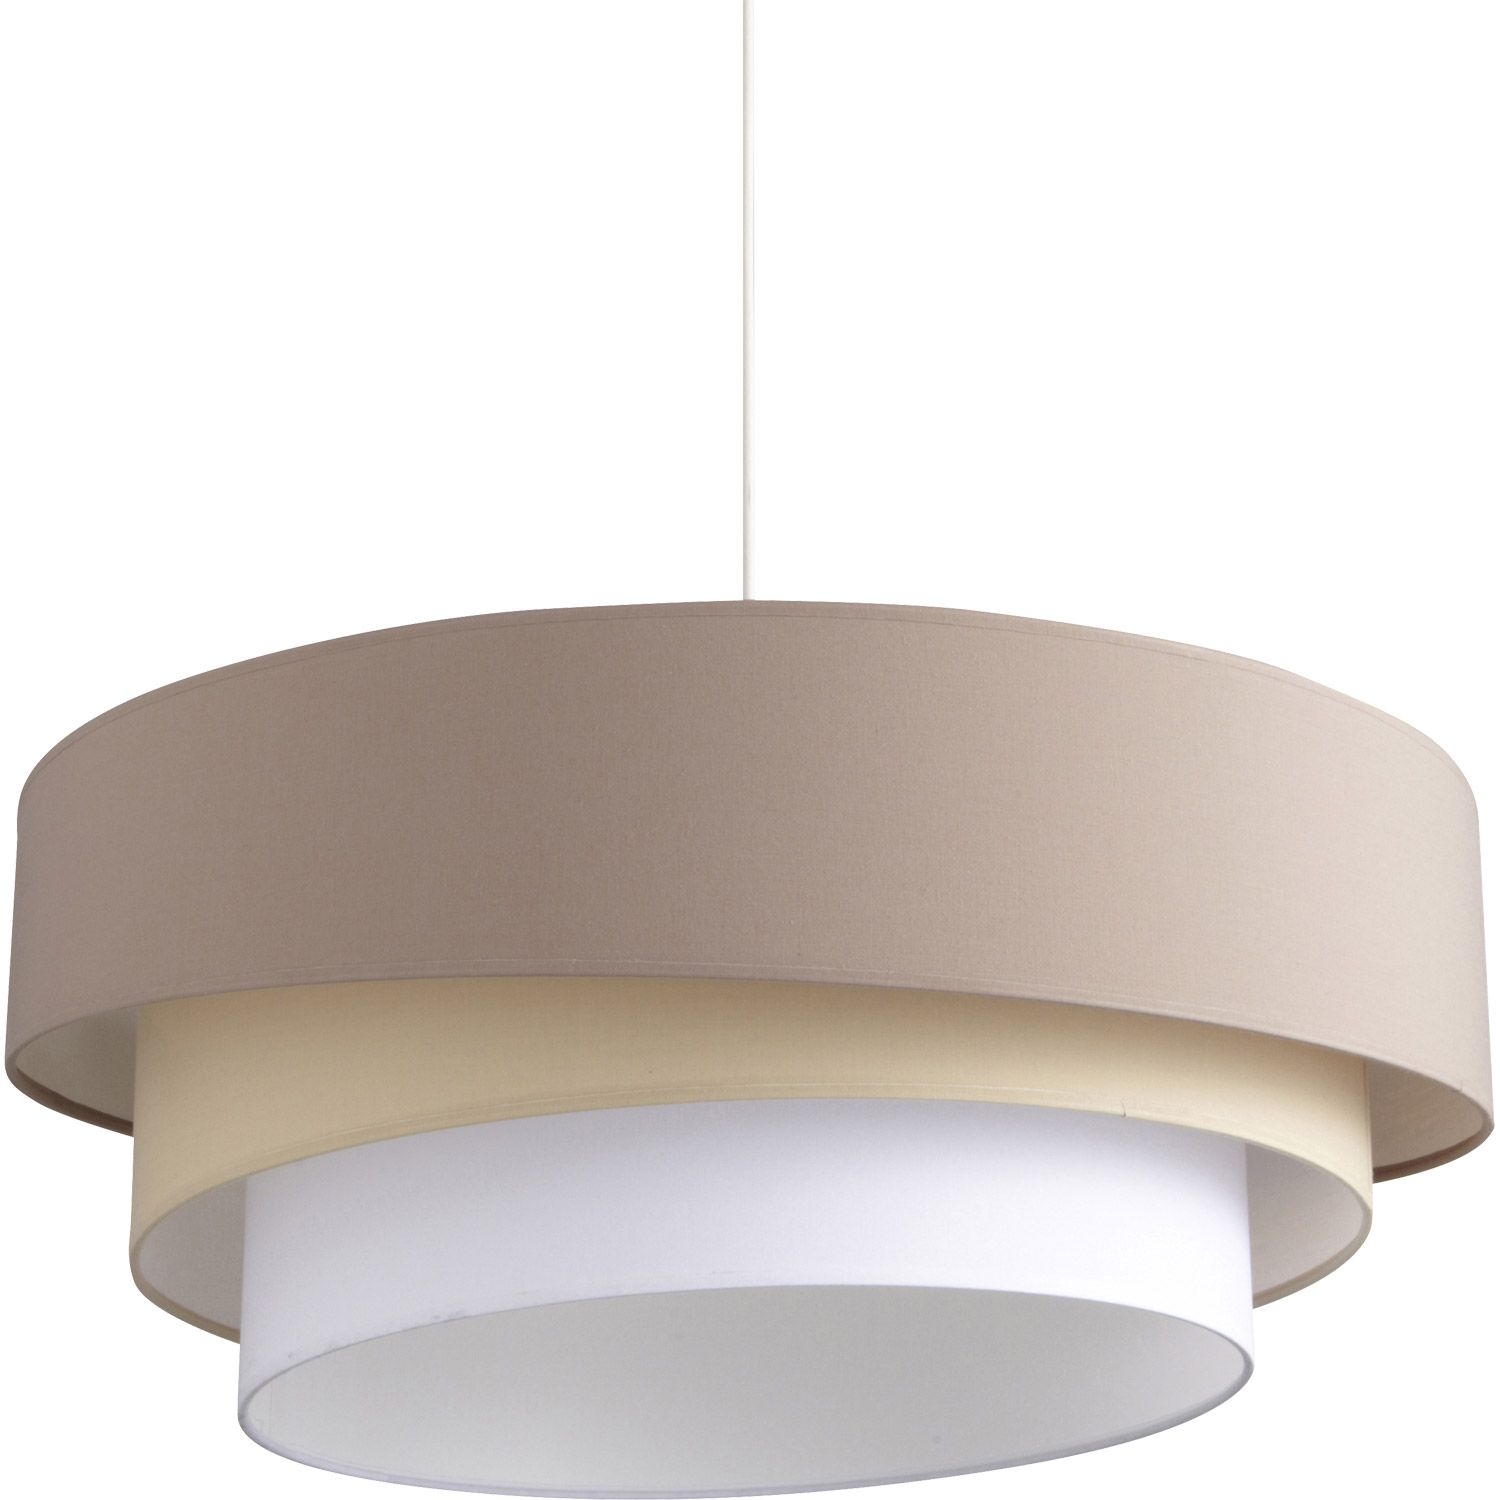 Luminaire Paulmann Leroy Merlin Pin By Caroline De Clercq On Luminaire Bougies Pinterest Taupe